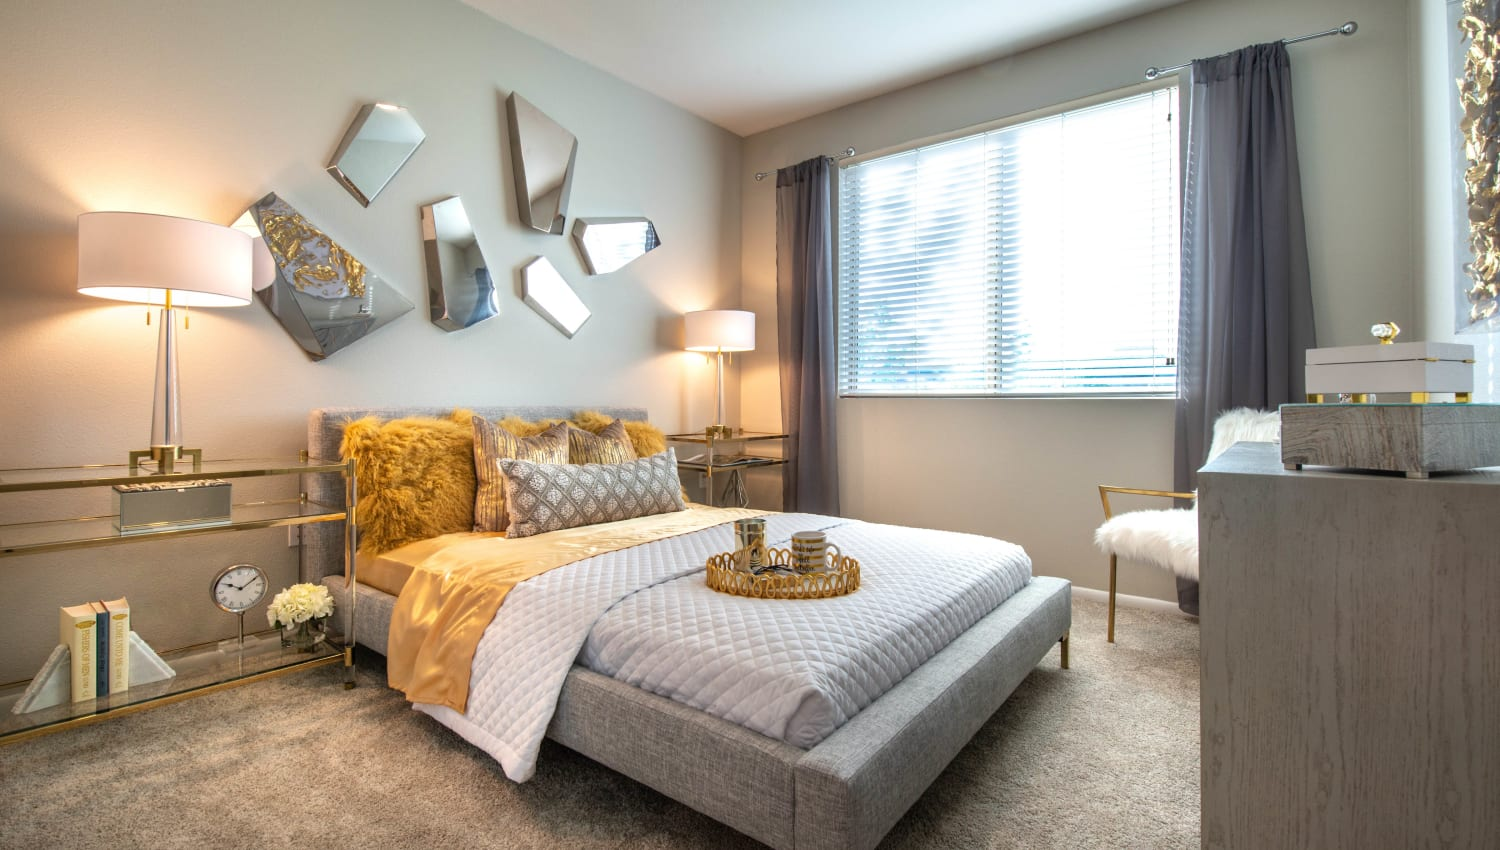 Well-furnished master bedroom in a model home at Olympus at Daybreak in South Jordan, Utah